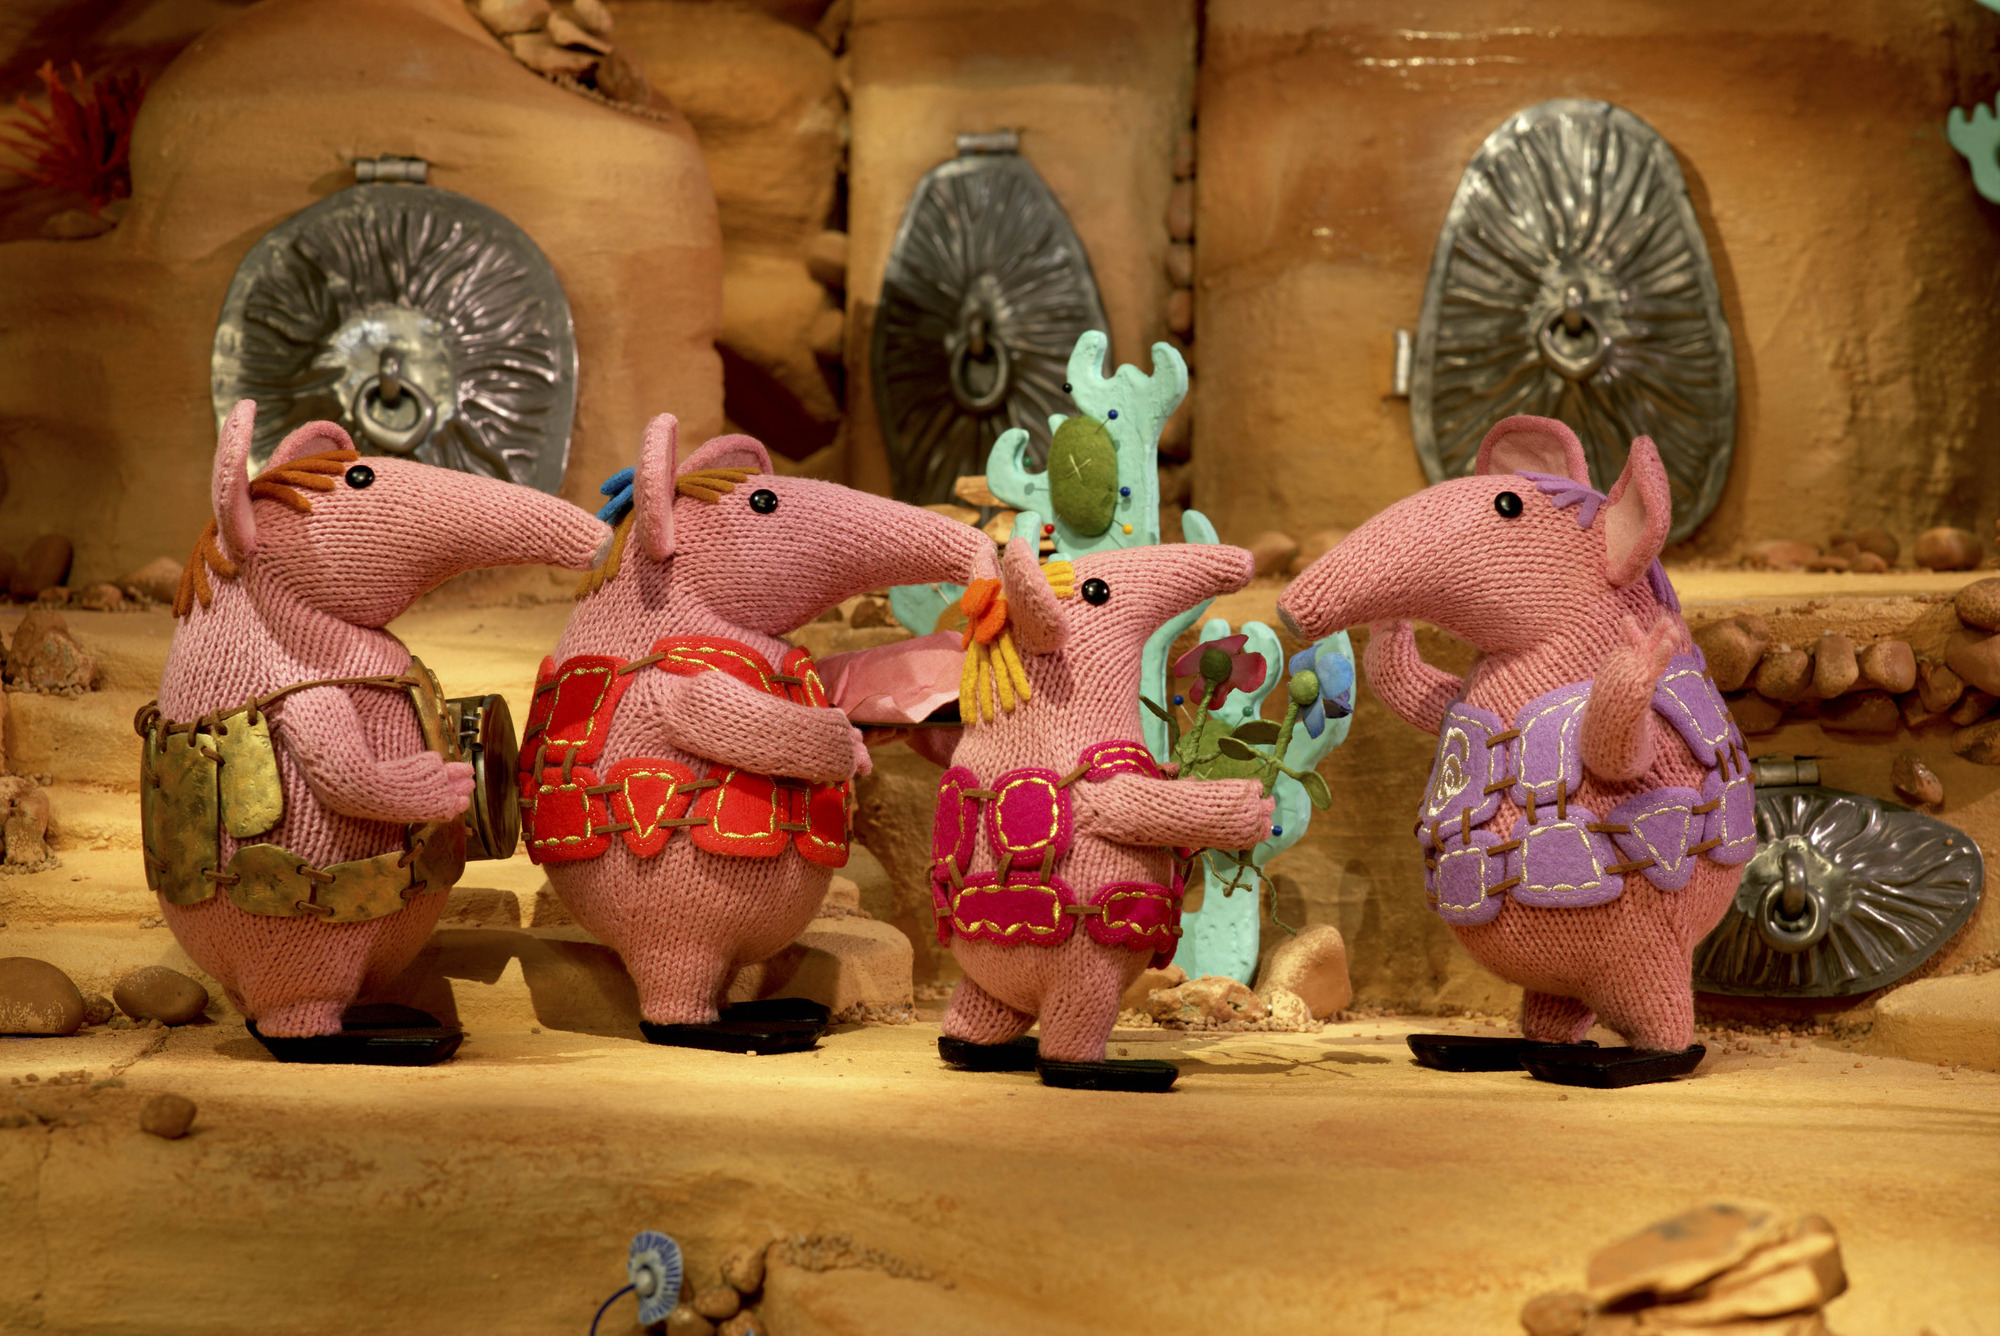 The other Clangers line up to give Granny the presents they have made for her birthday. Major, Mother, Tiny, Granny - (C) Coolabi, Smallfilms and Peter Firmin - Photographer: Production